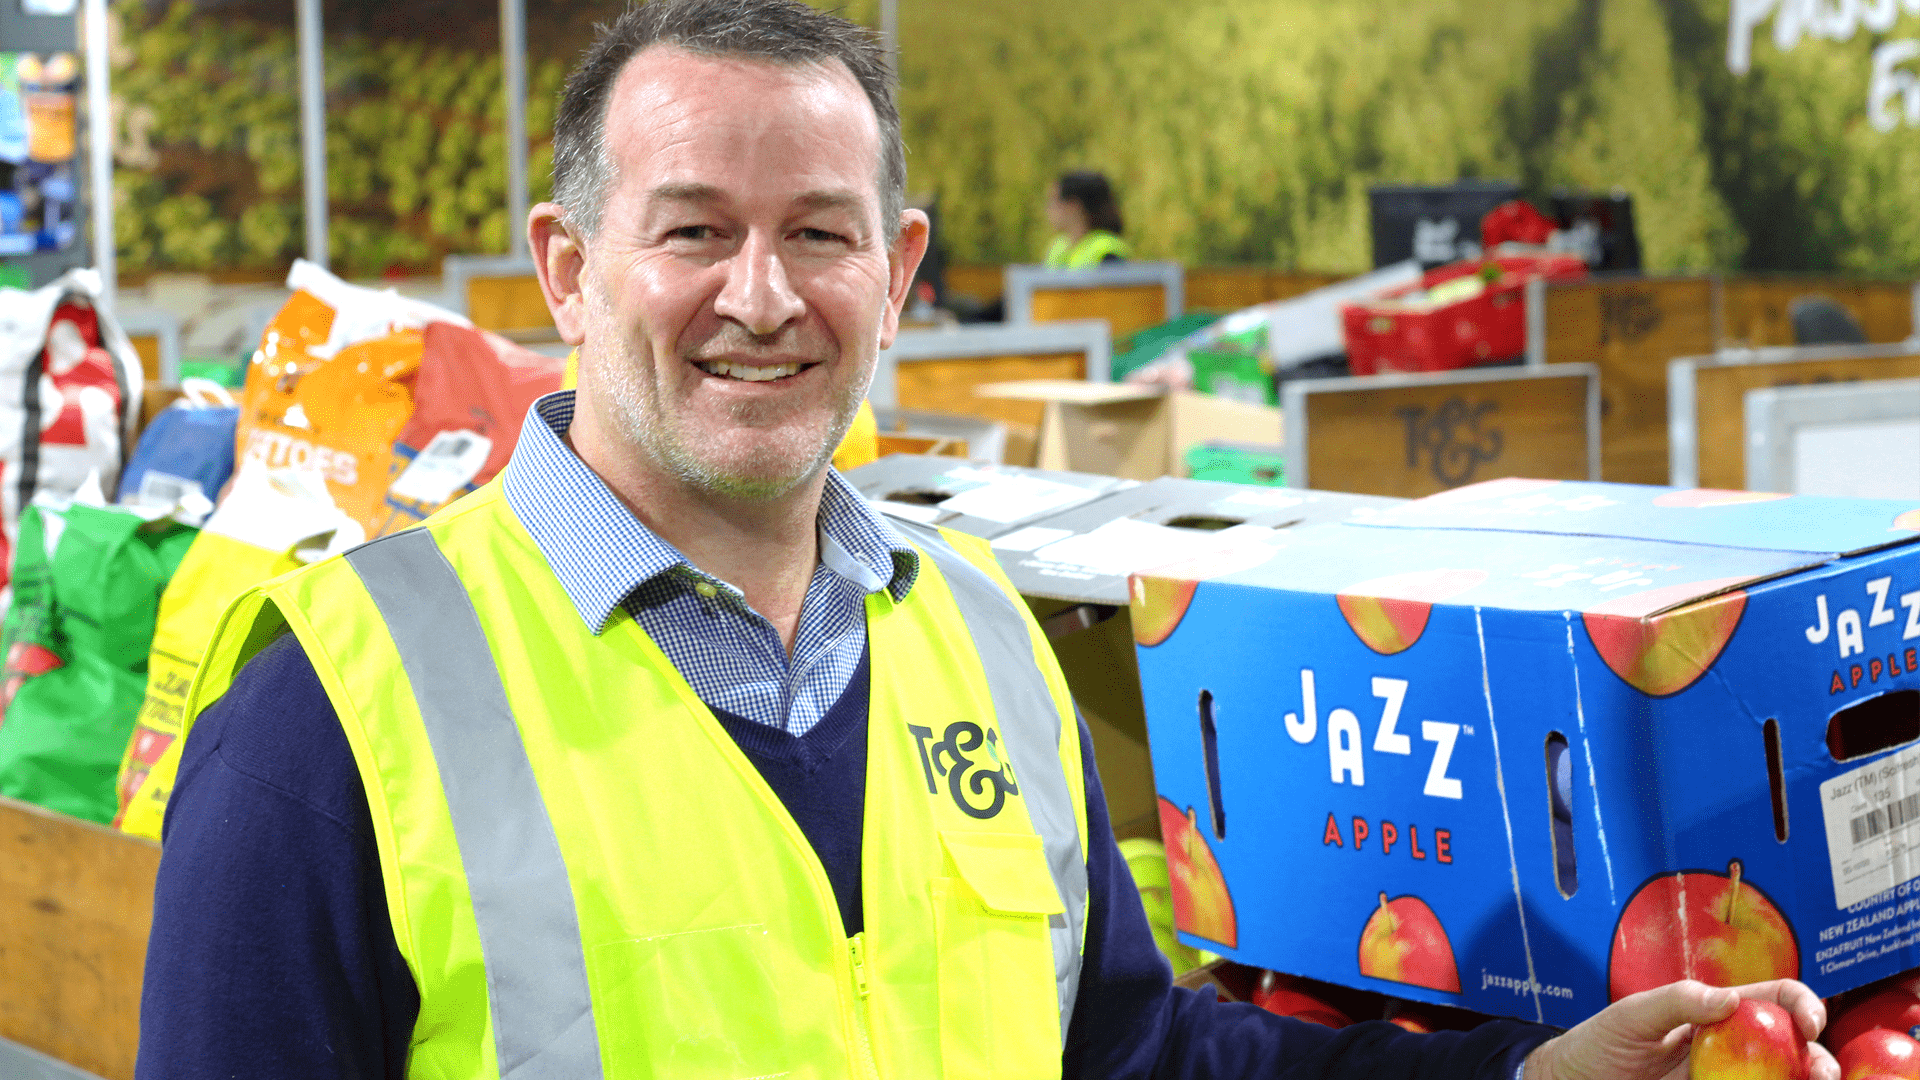 Giving everyone a Fairgrow: helping to get fresh fruit and veges to Kiwis in need